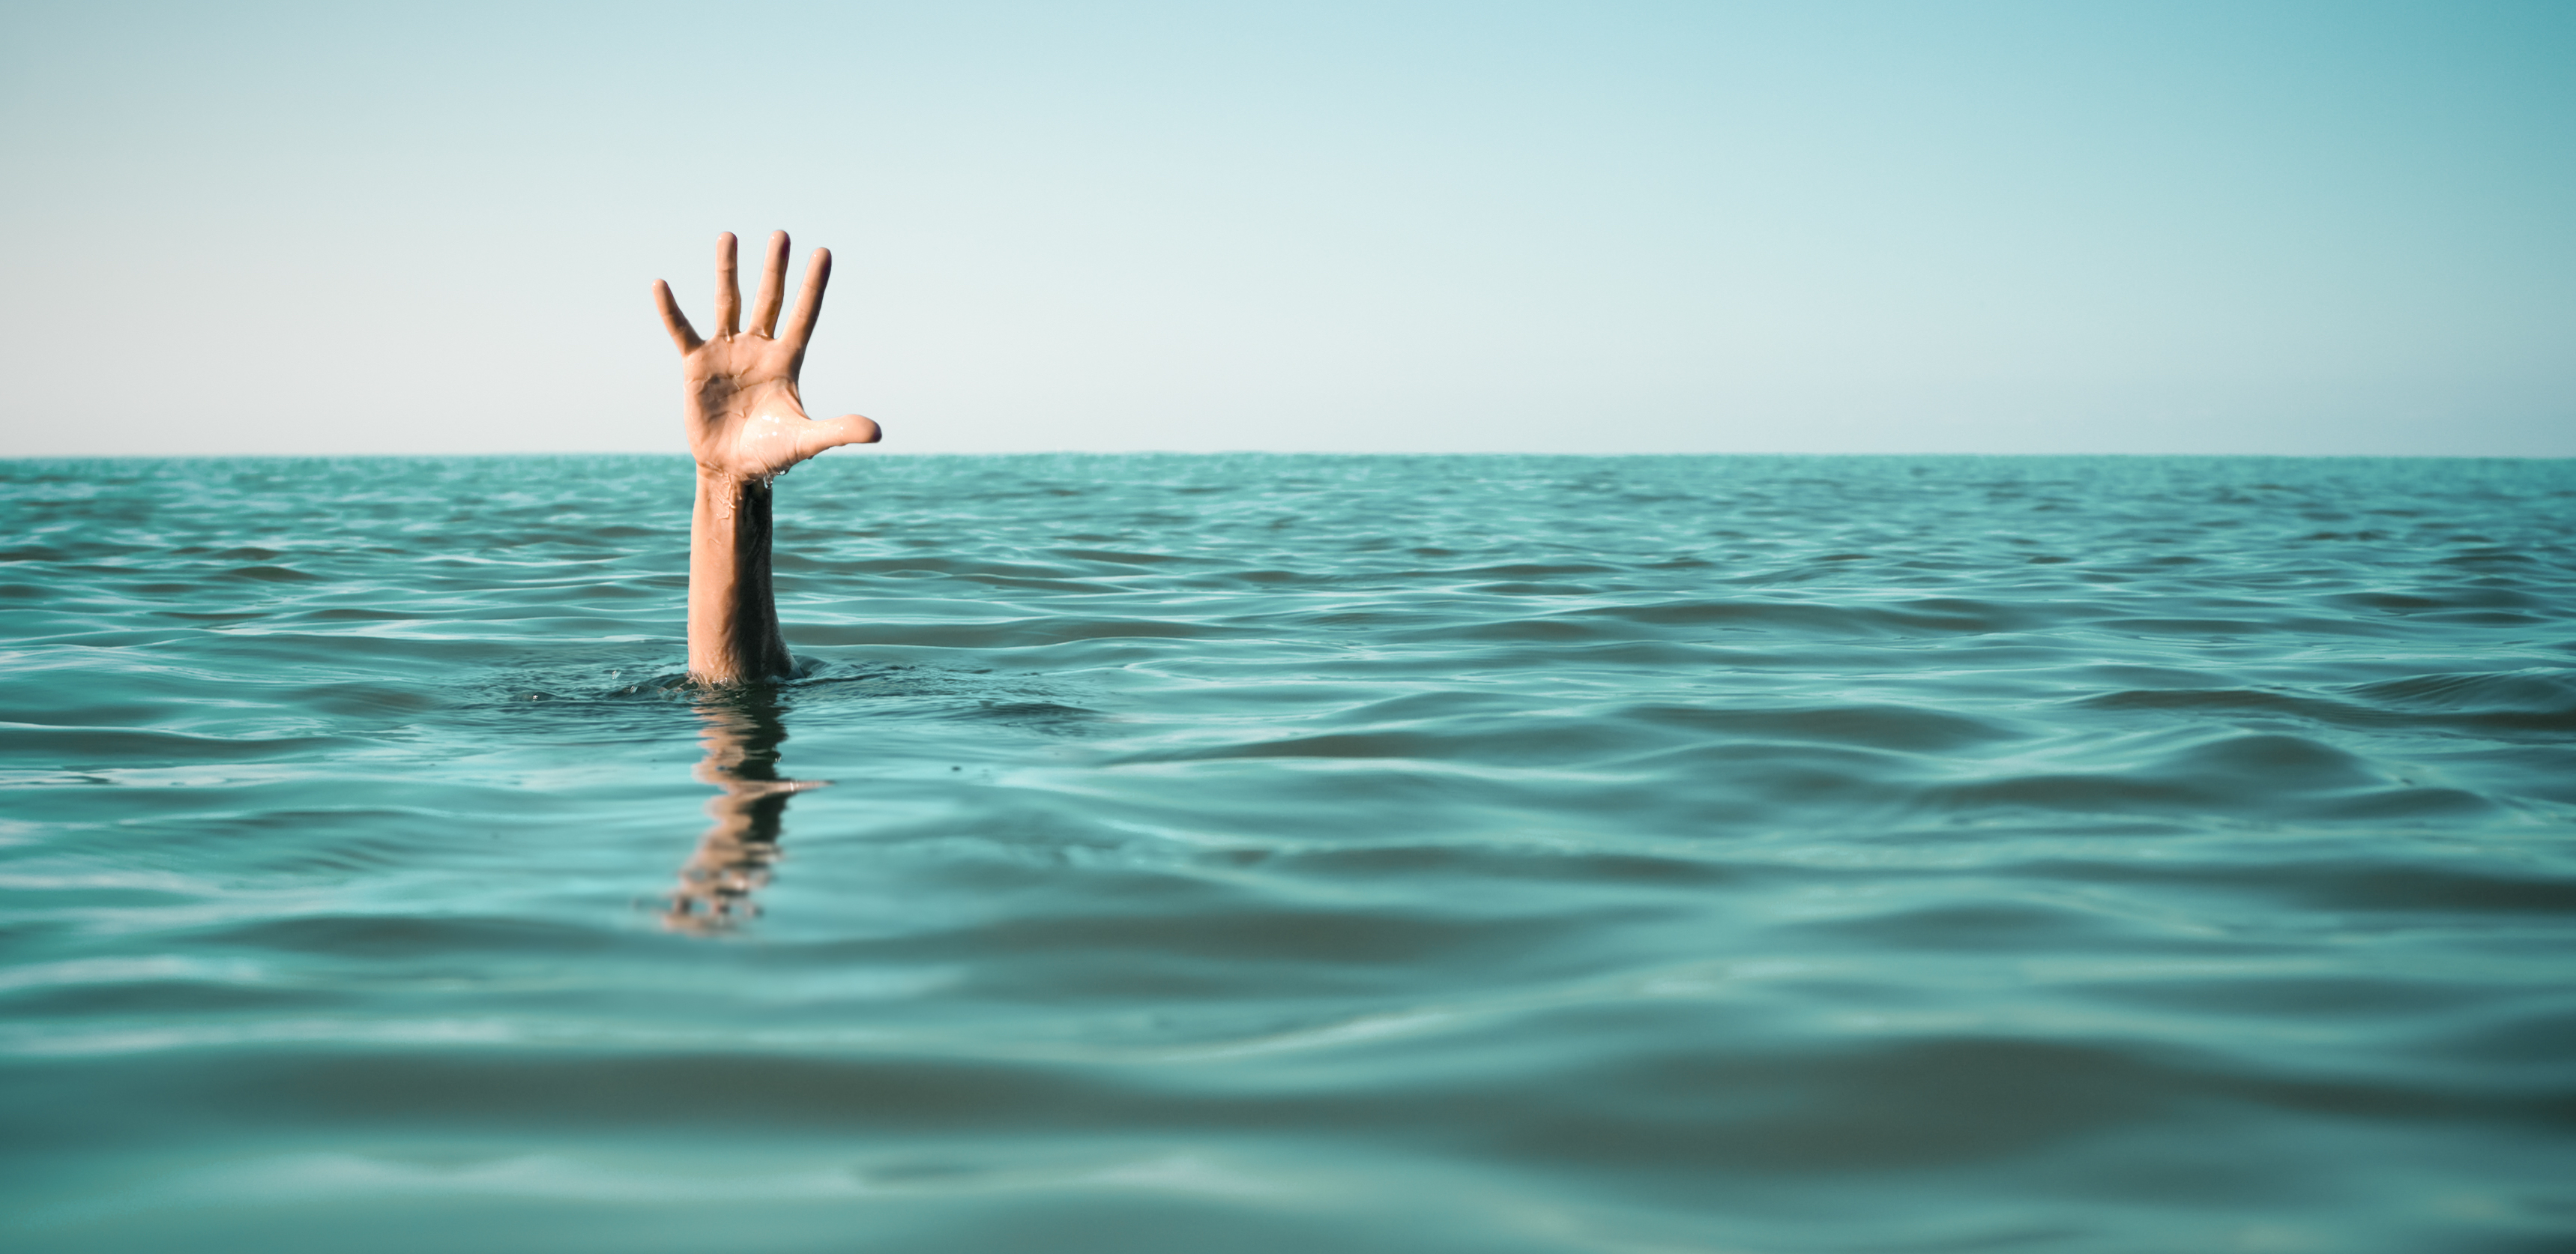 Images problems hand help drown Sea Hands